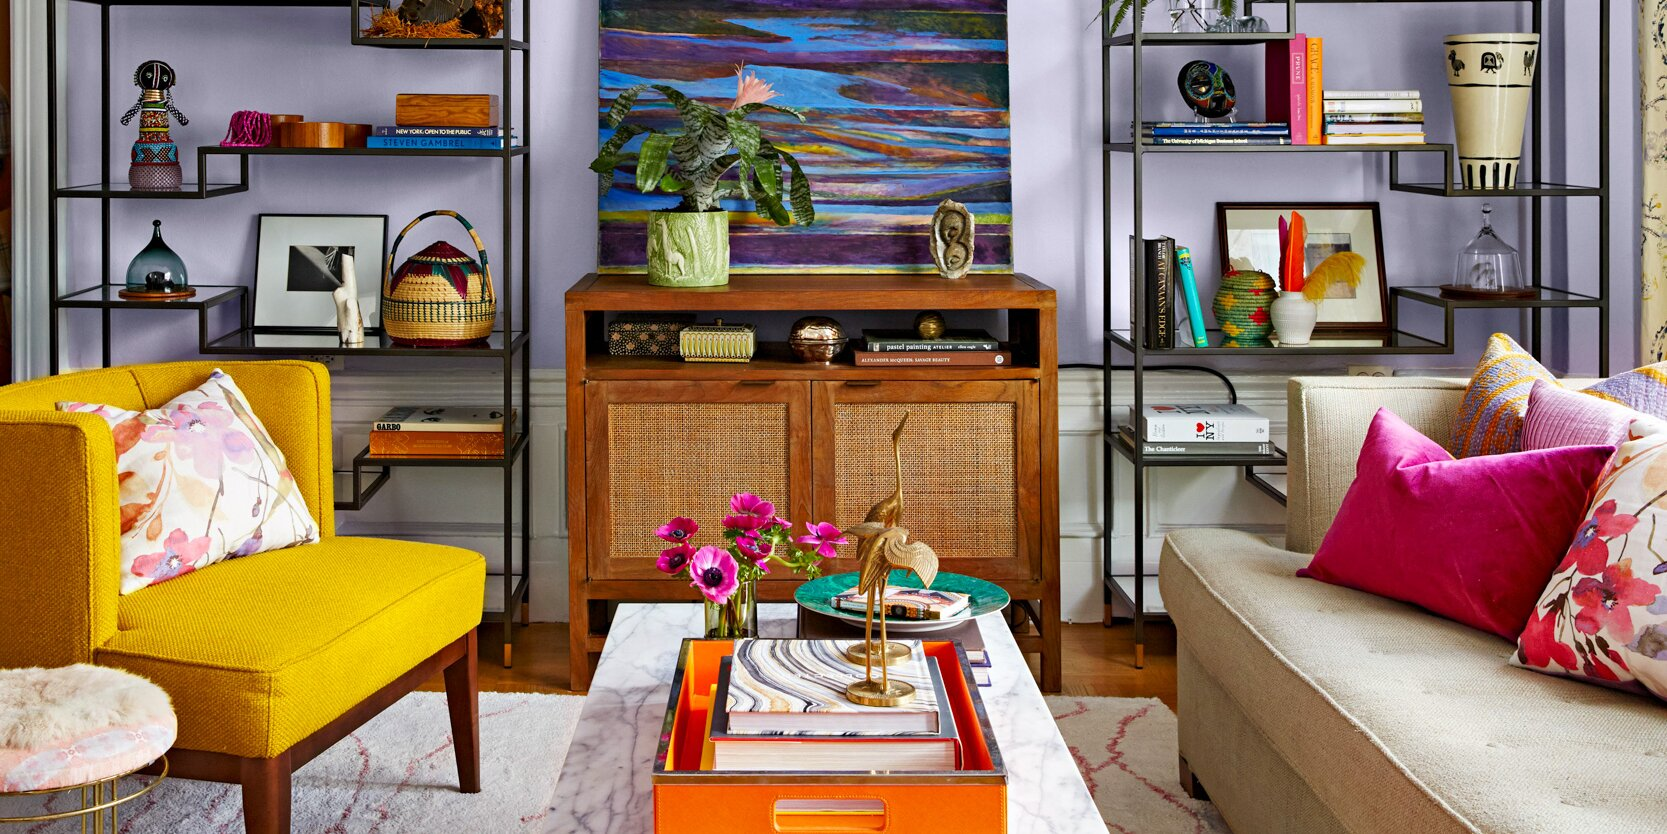 Our Best Maximalist Design Ideas For A Room That S Bursting With Style Better Homes Gardens